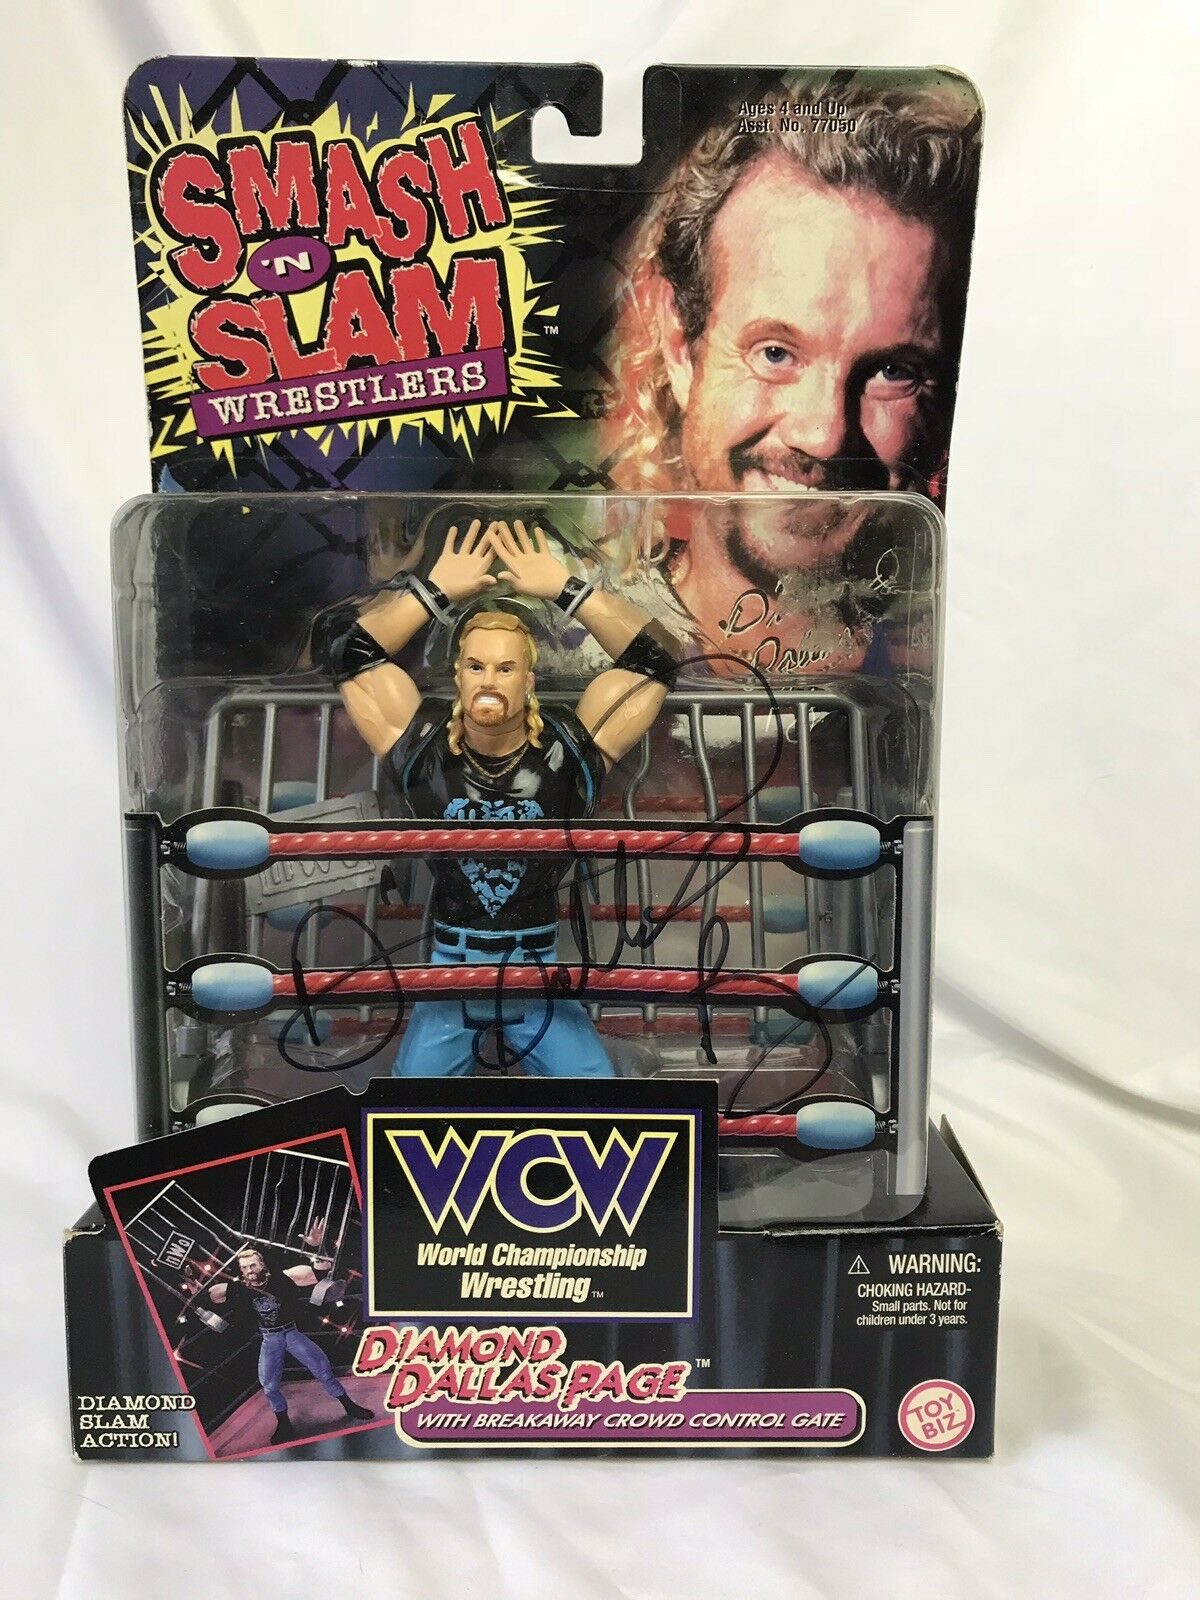 Autographed WCW Superstar Diamond Dallas Page Signed Wrestling Action Figure WWE